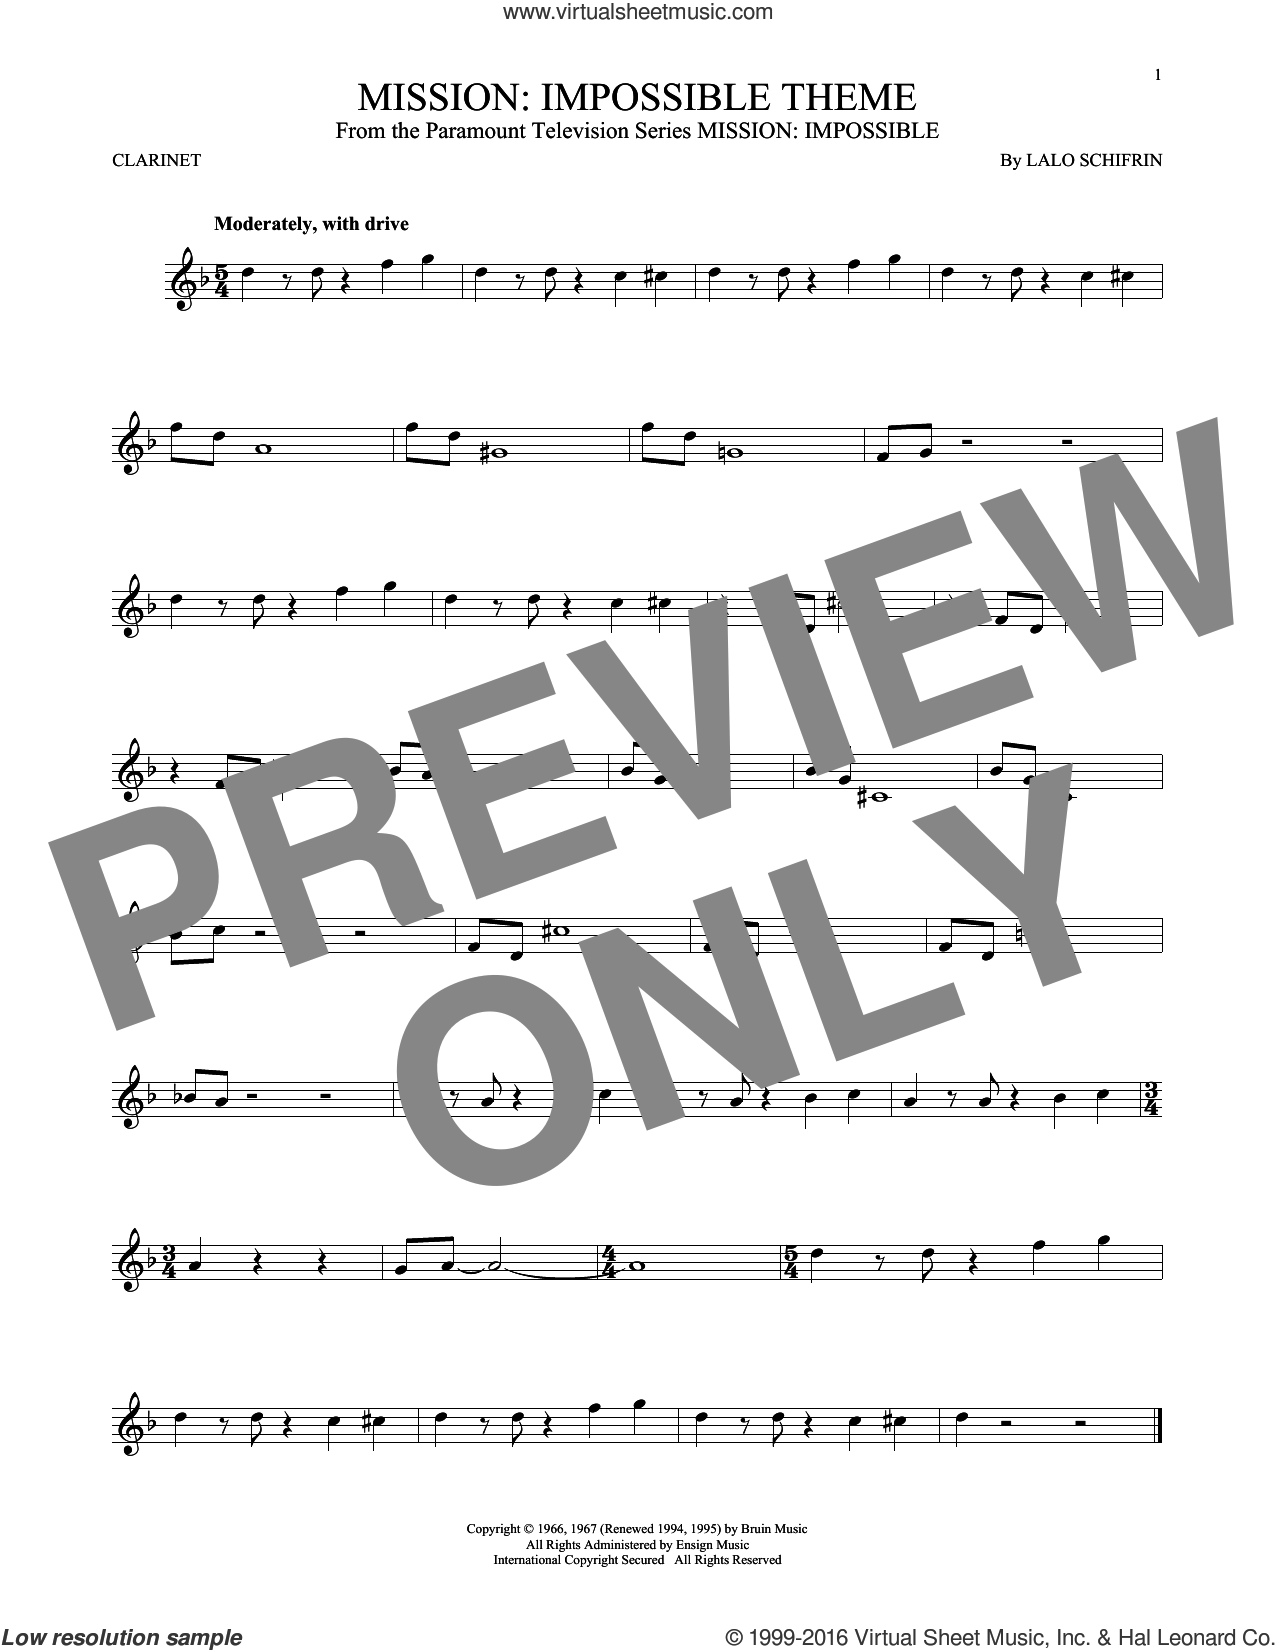 Mission: Impossible Theme sheet music for clarinet solo by Lalo Schifrin, intermediate skill level